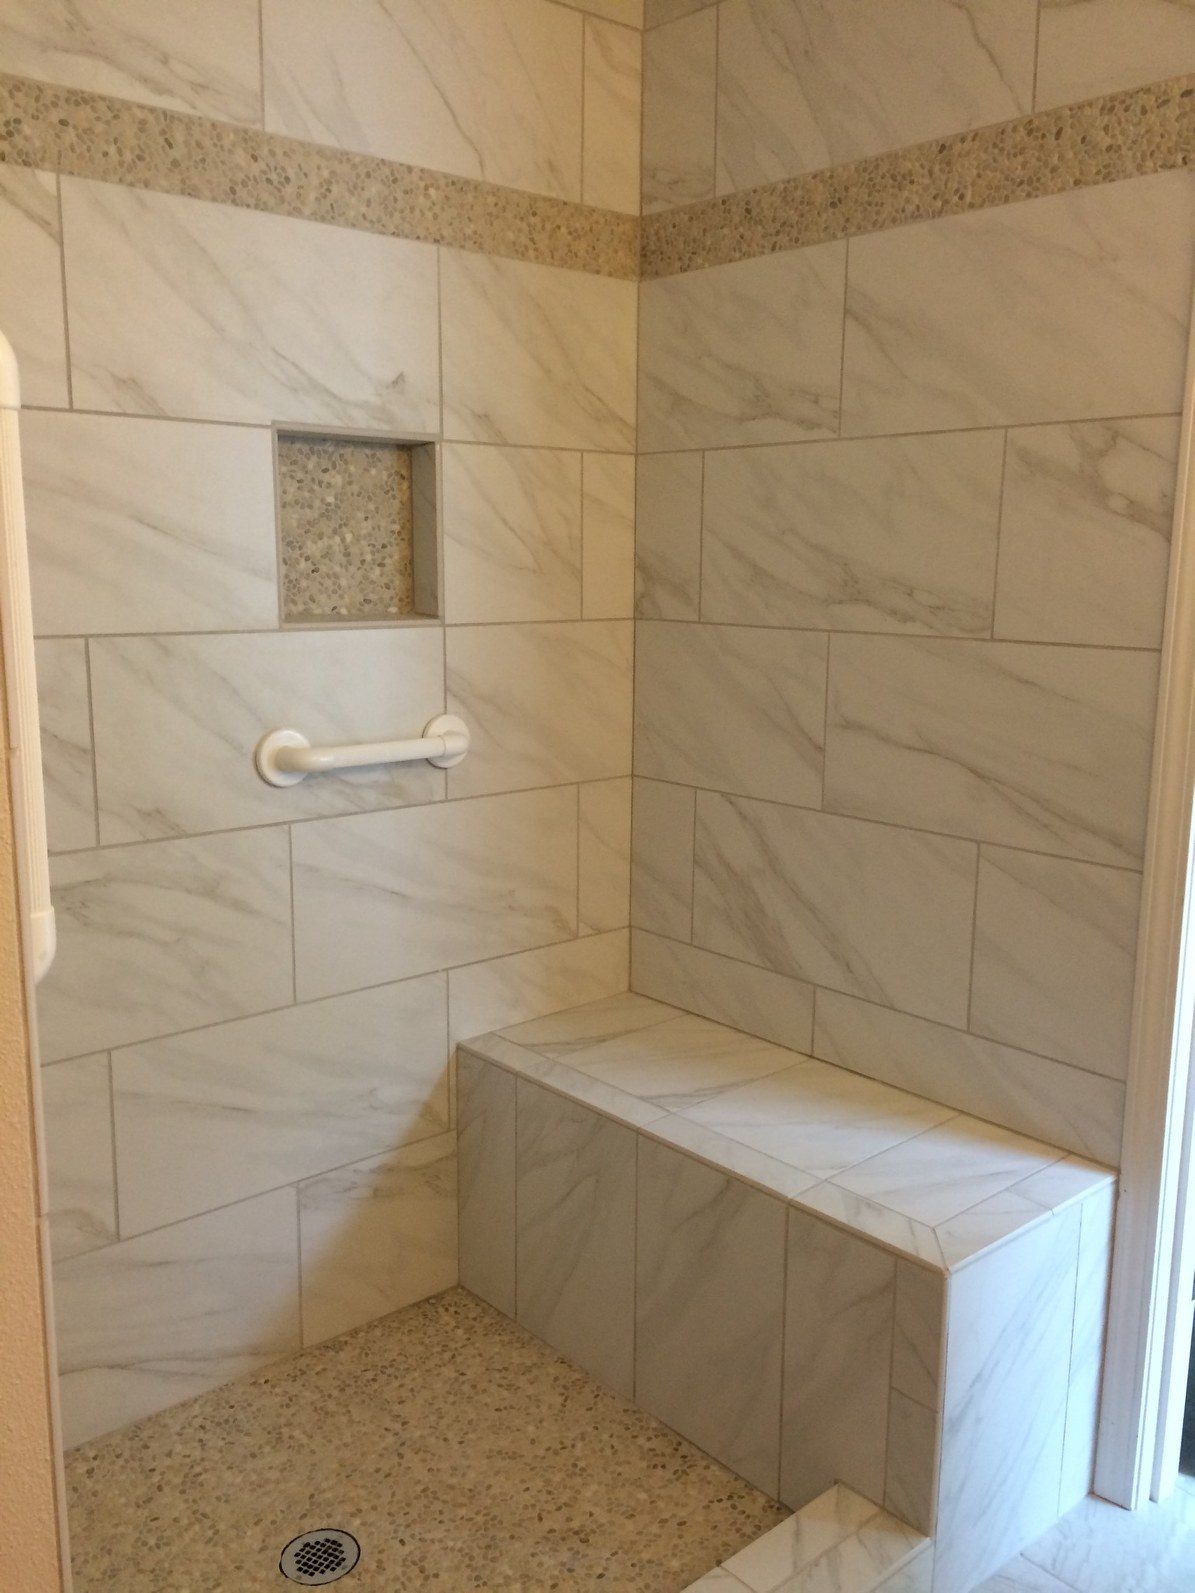 12x24 Tile Shower Custom Shower W Grab Bars Giant Don S Flooring America